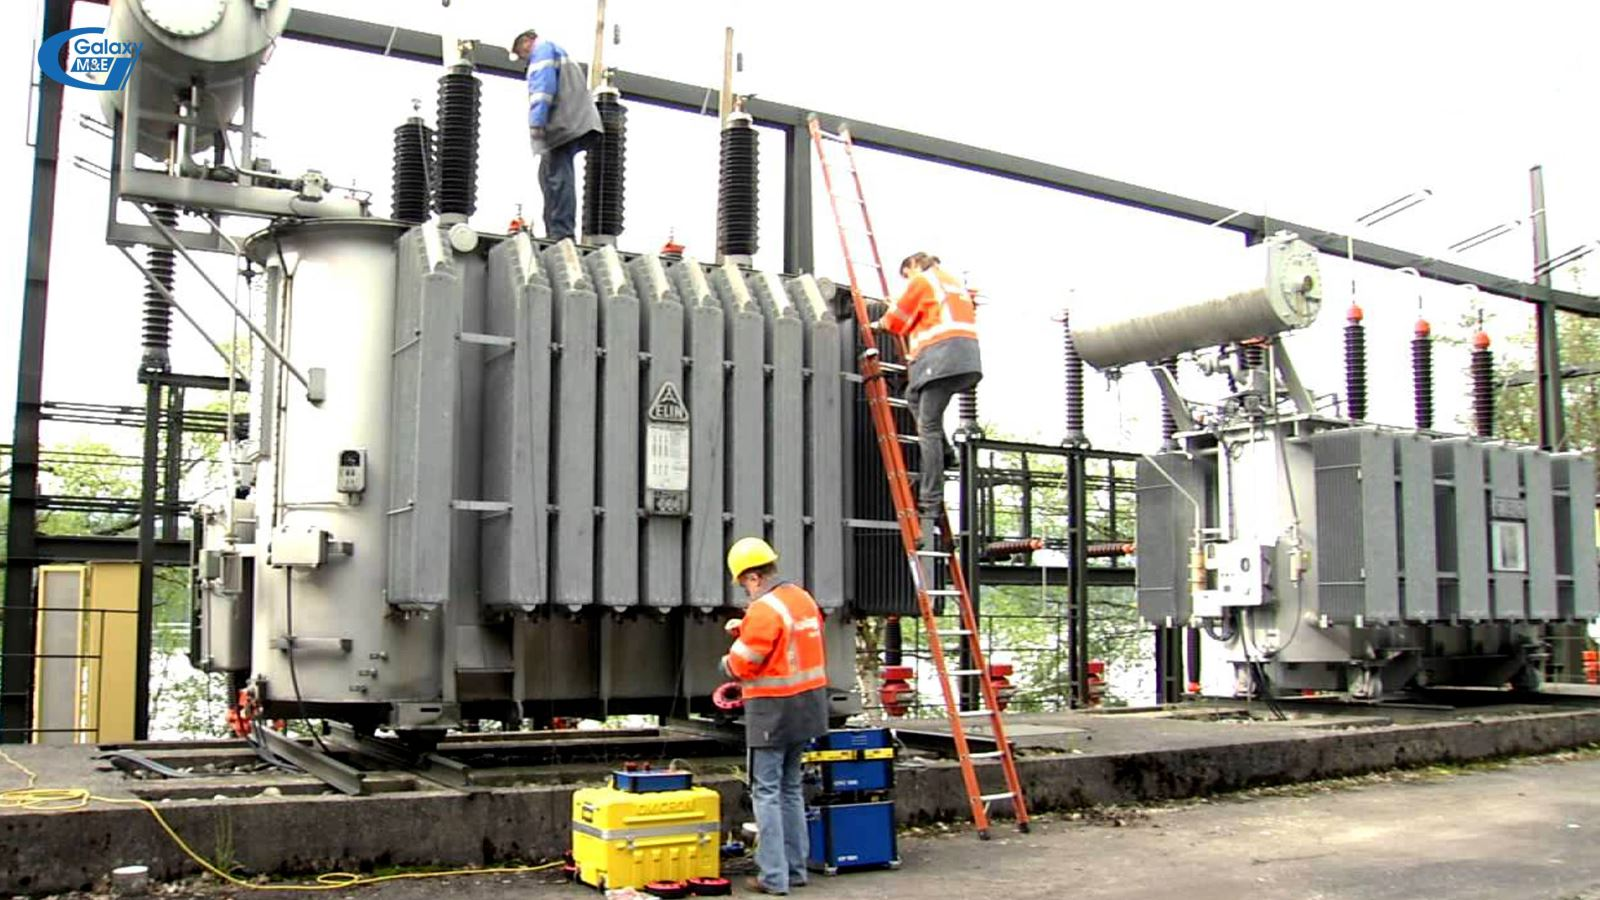 It is necessary to strictly follow the inspection process of transformers, lines and load devices.